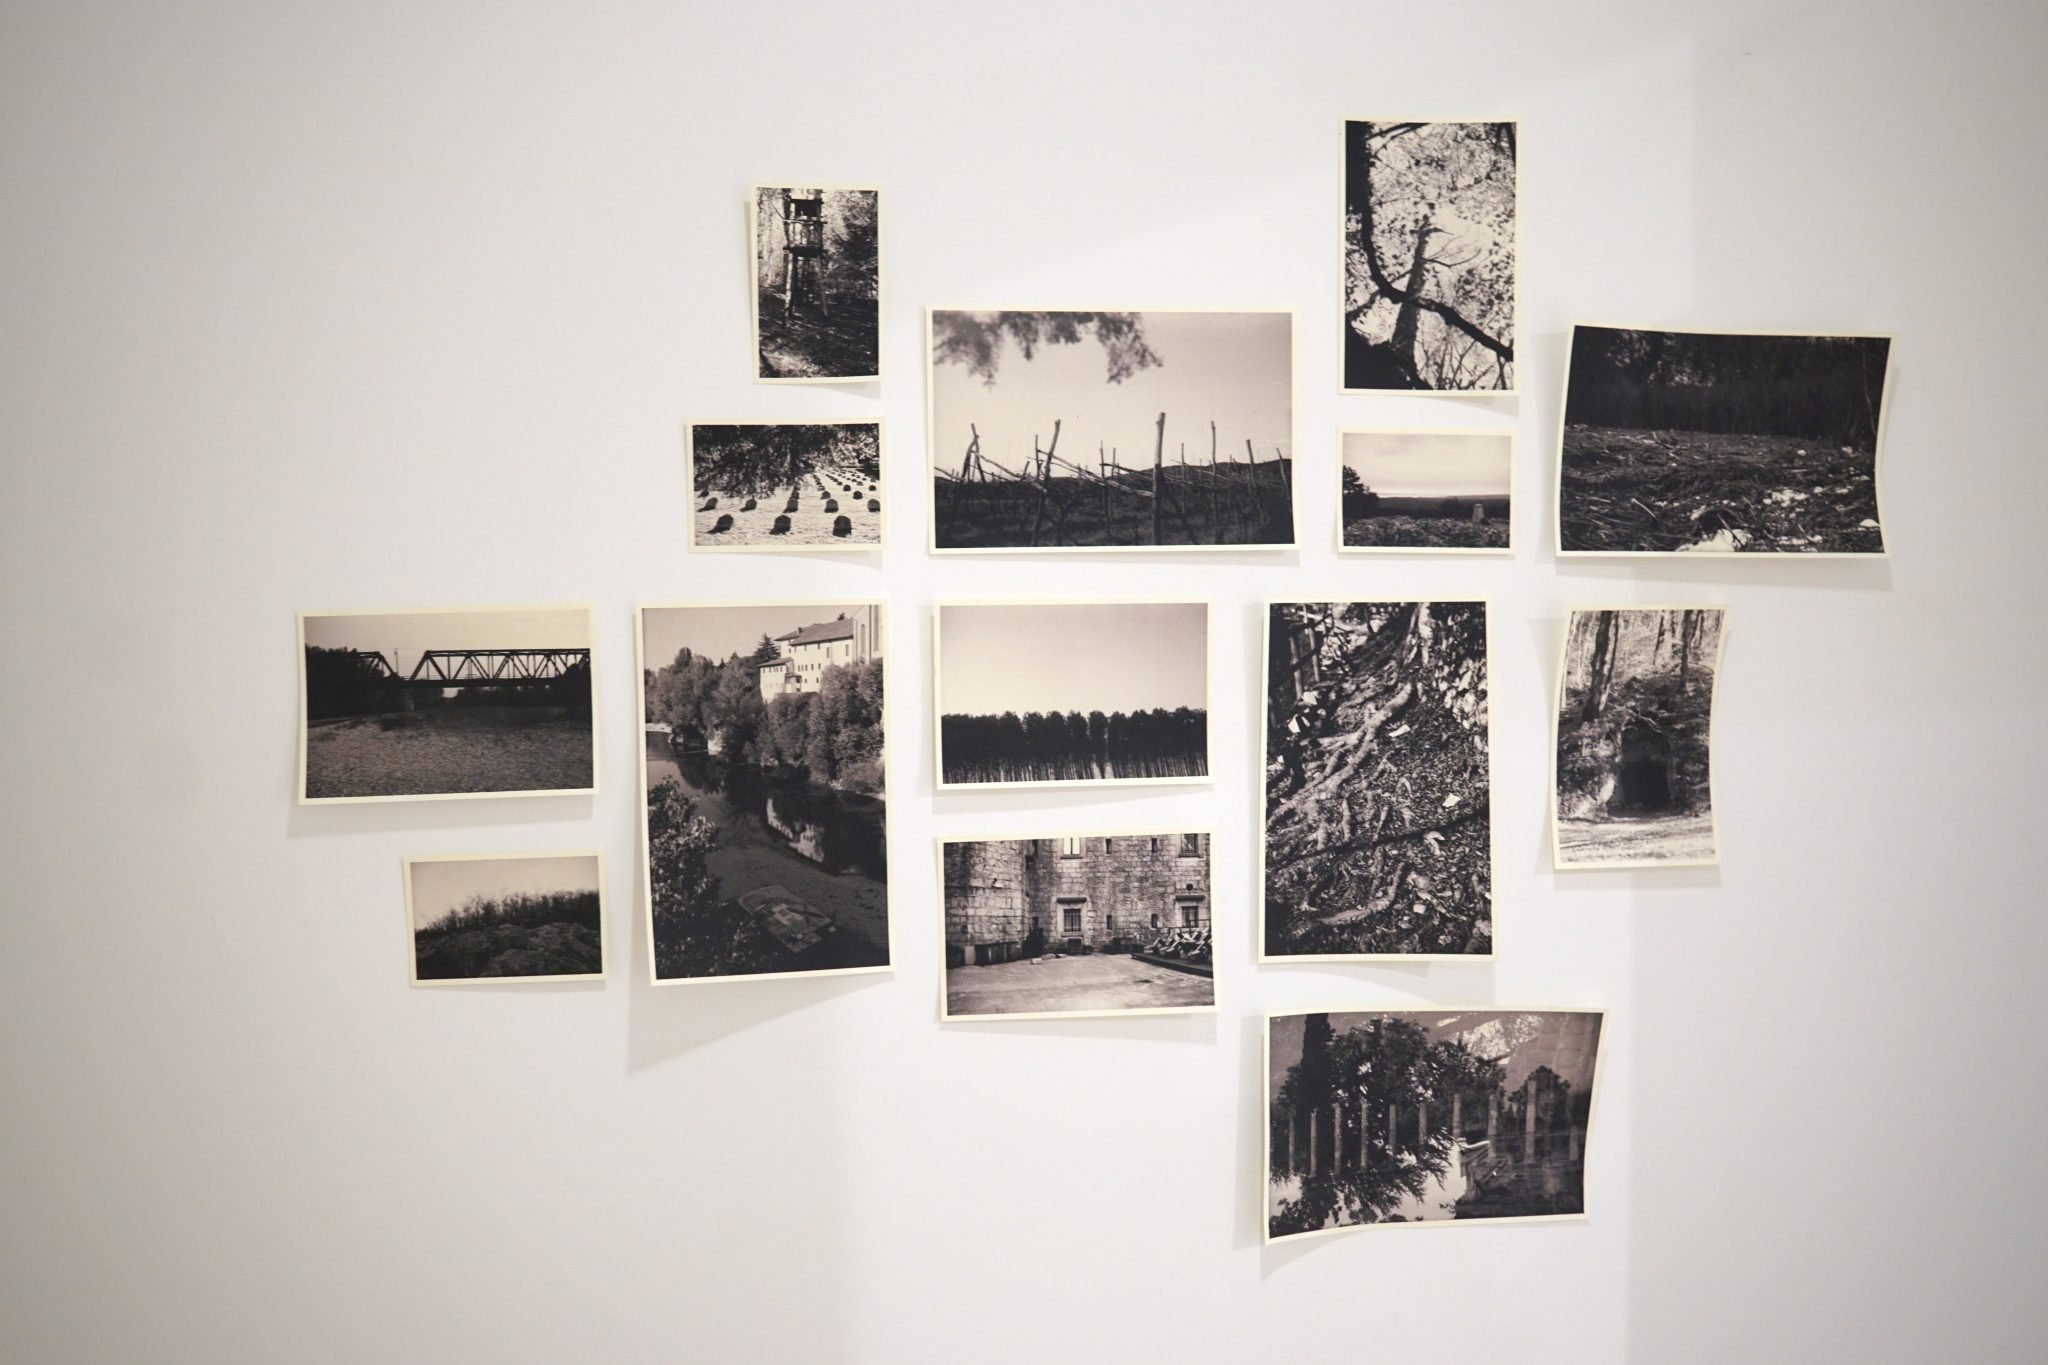 MEMORY LANDS / visit the exhibition until december the 2nd